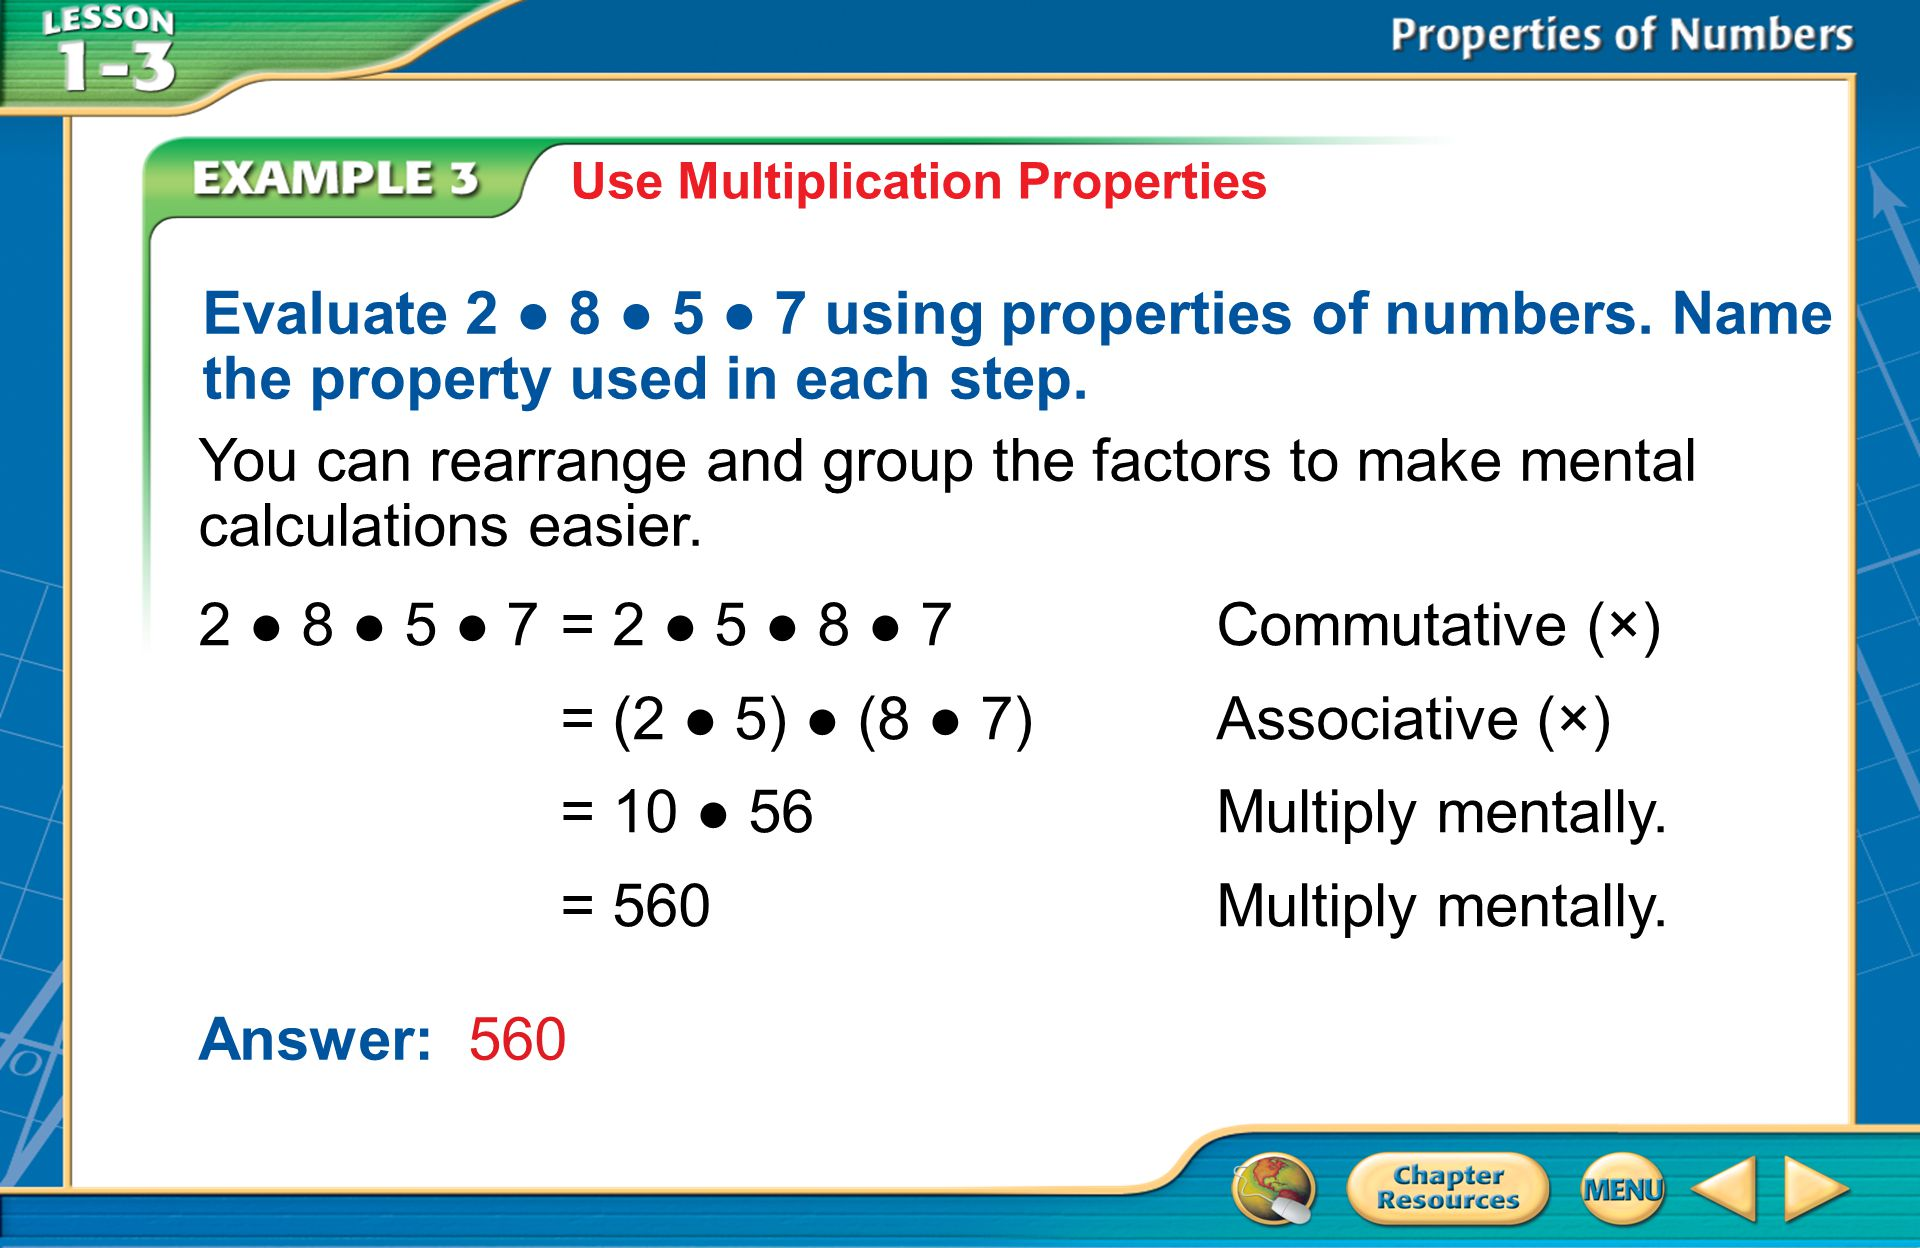 [Enter question here] A.45 B.36 C.15 D.180 Evaluate 3 ● 5 ● 3 ● 4.